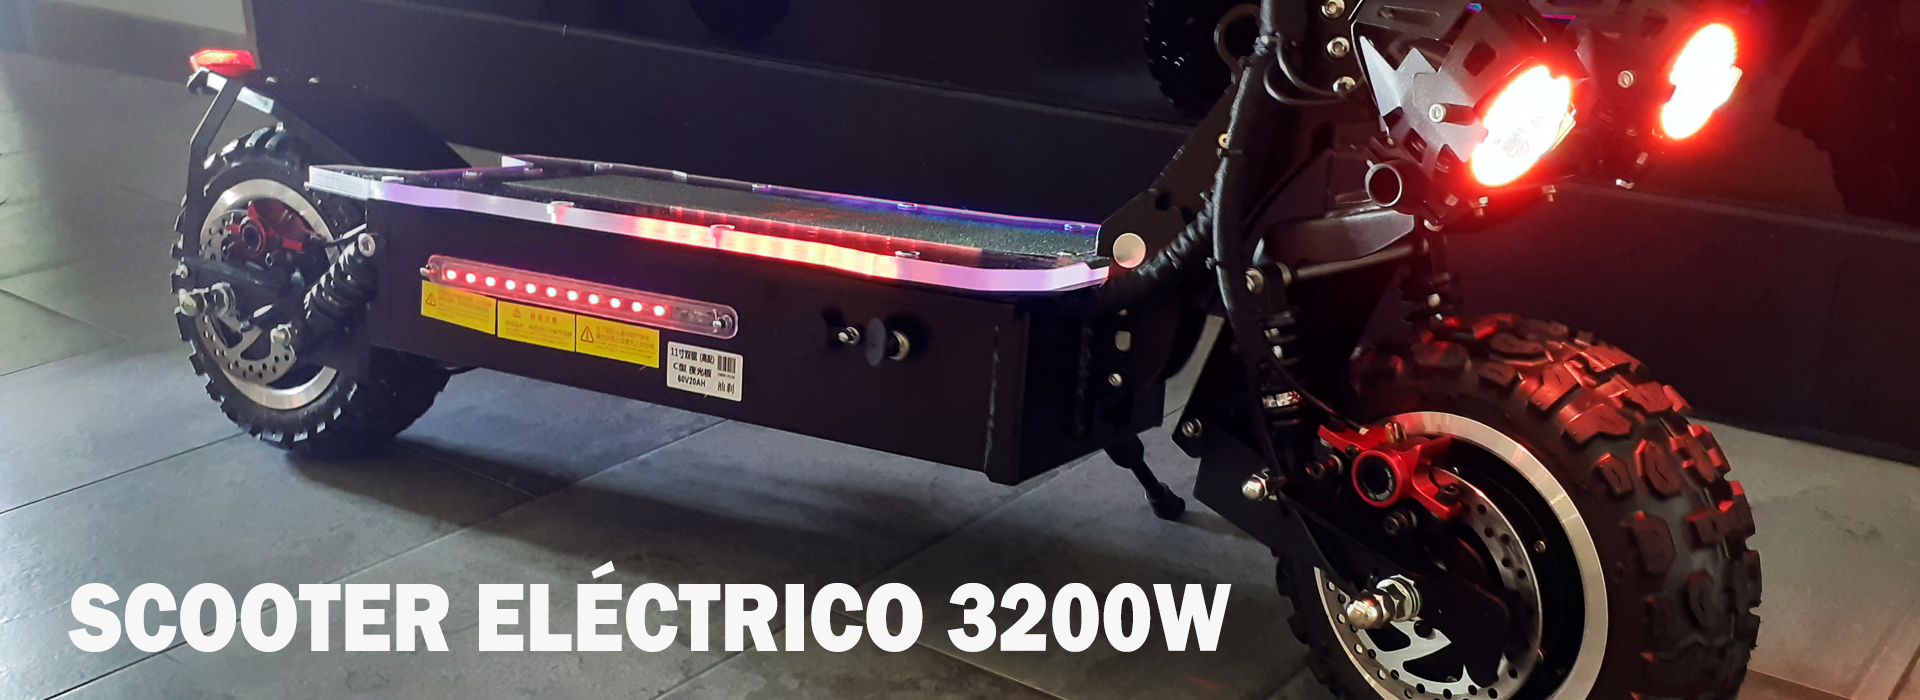 SCOOTER ELÉCTRICO 3200W